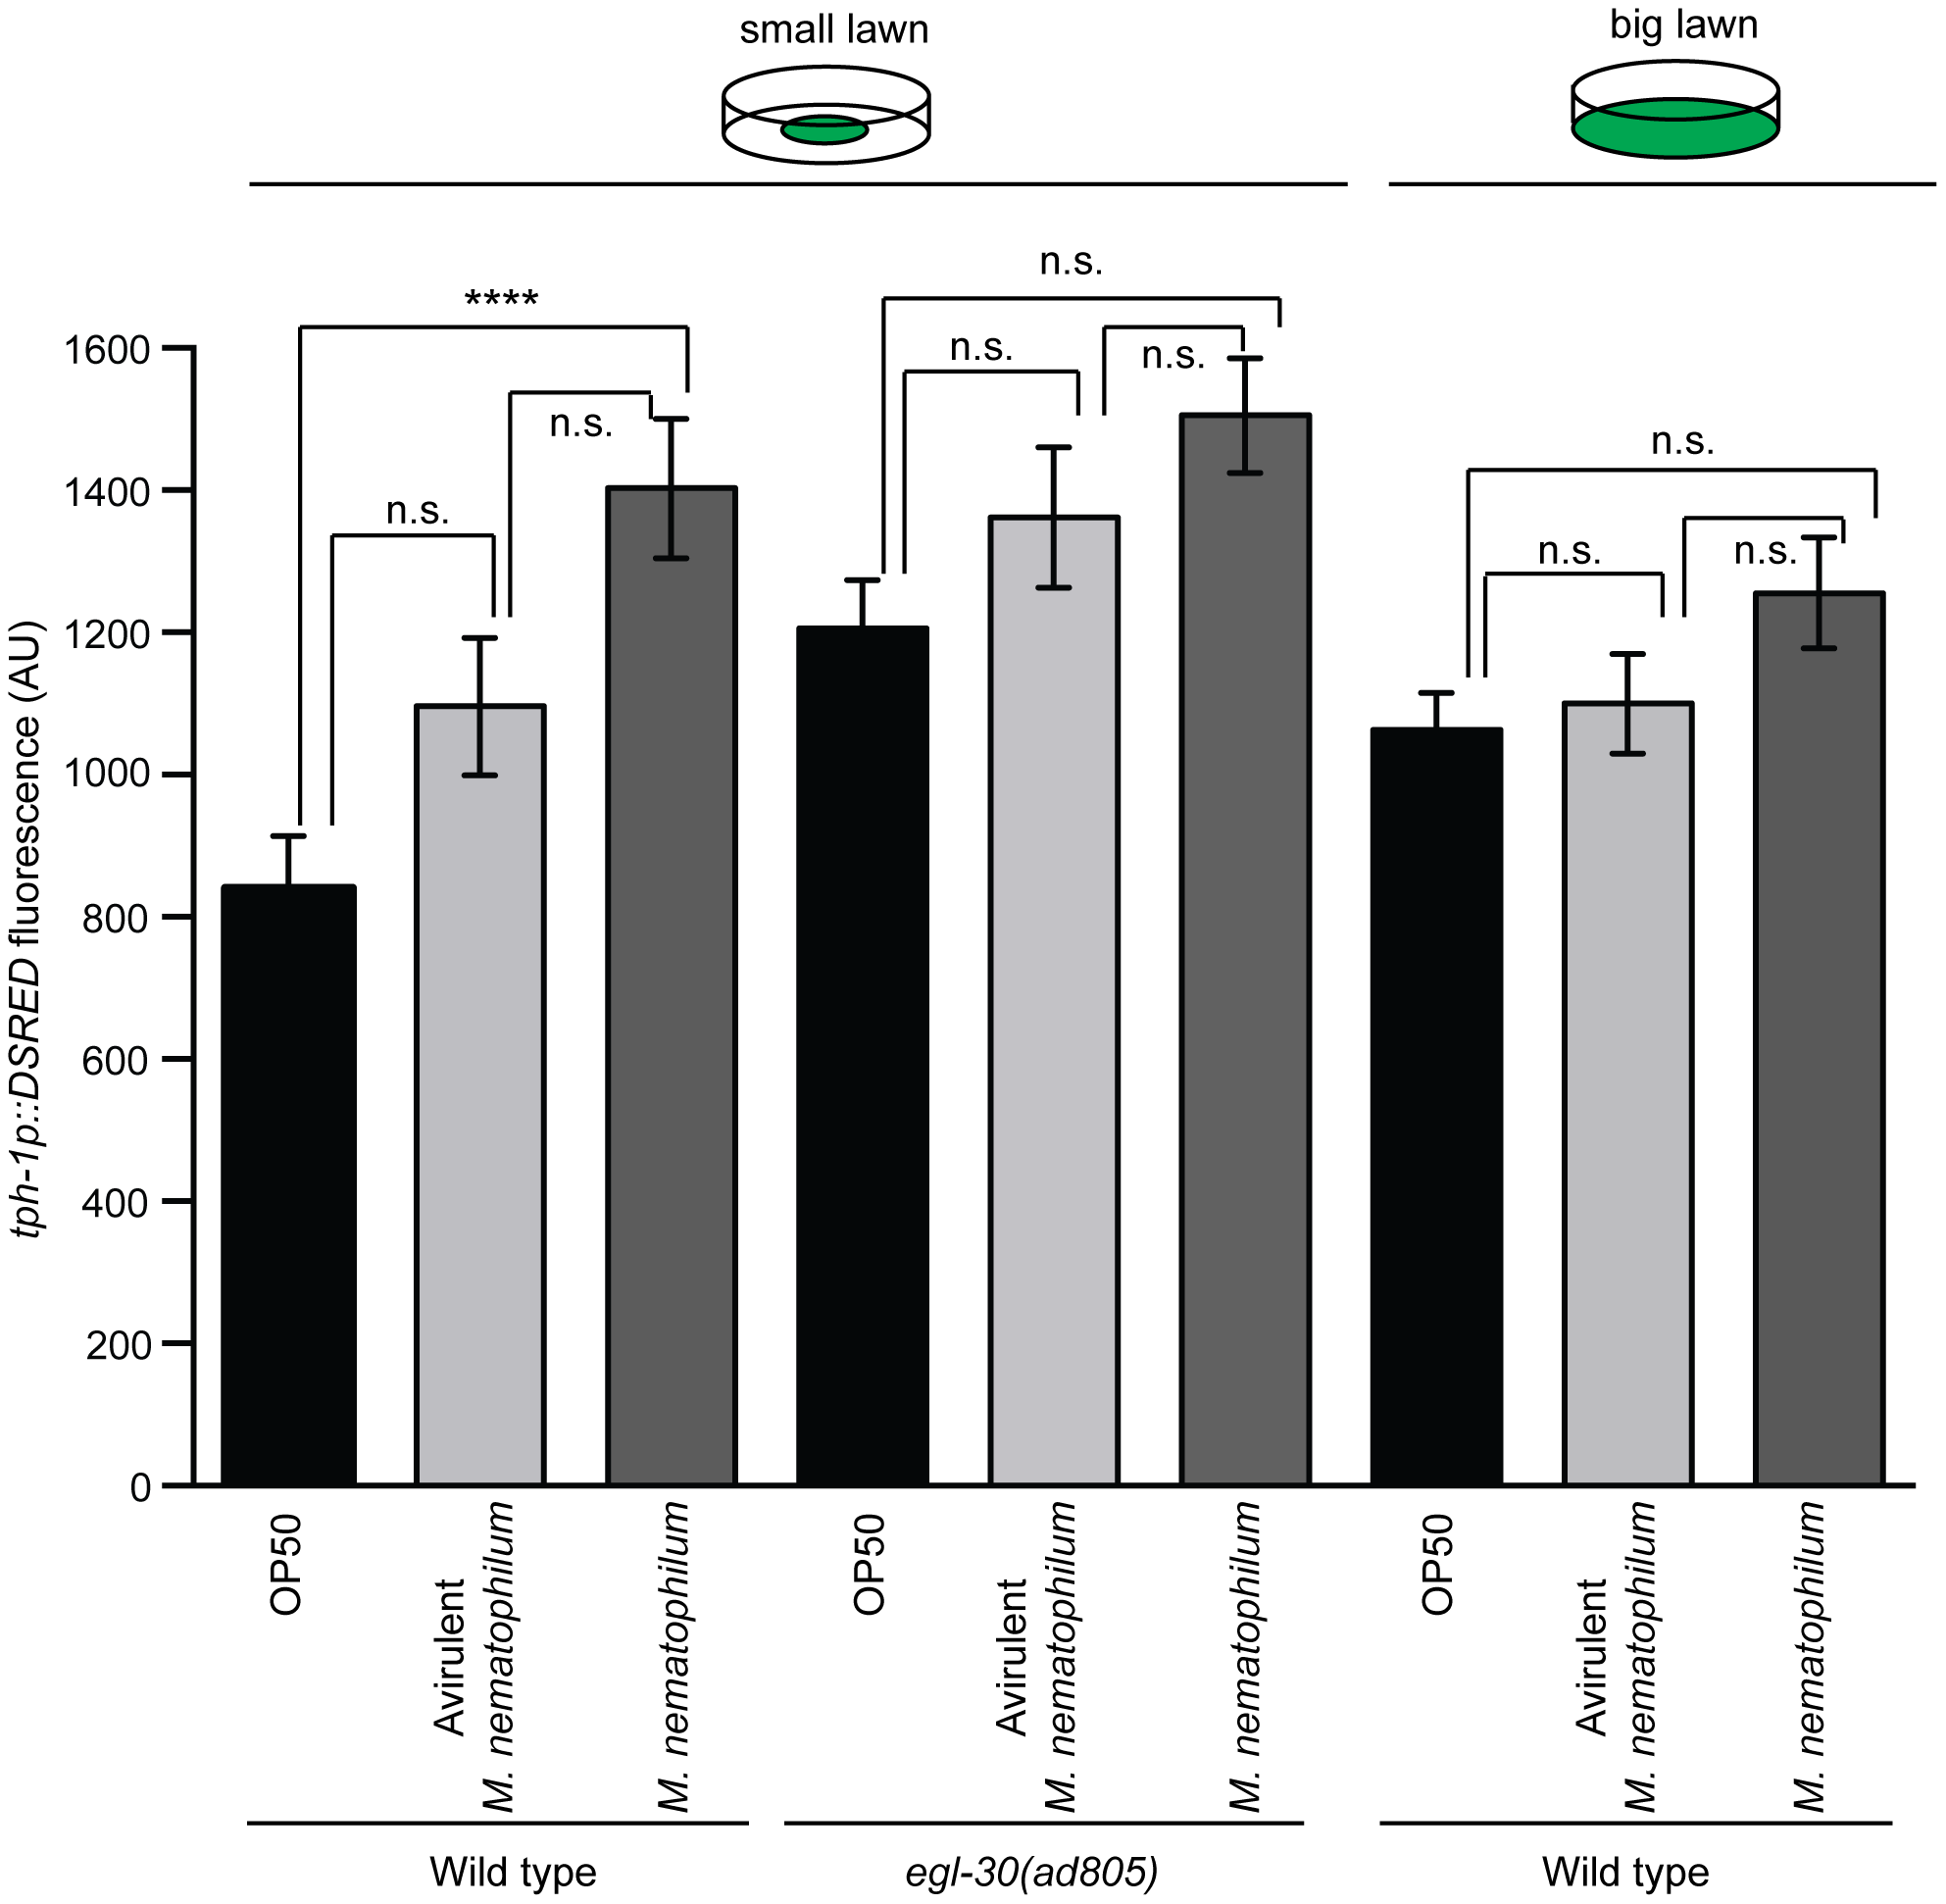 Increased expression of TPH-1 in ADF chemosensory neurons is caused by reduced contact with contaminated bacterial lawns.